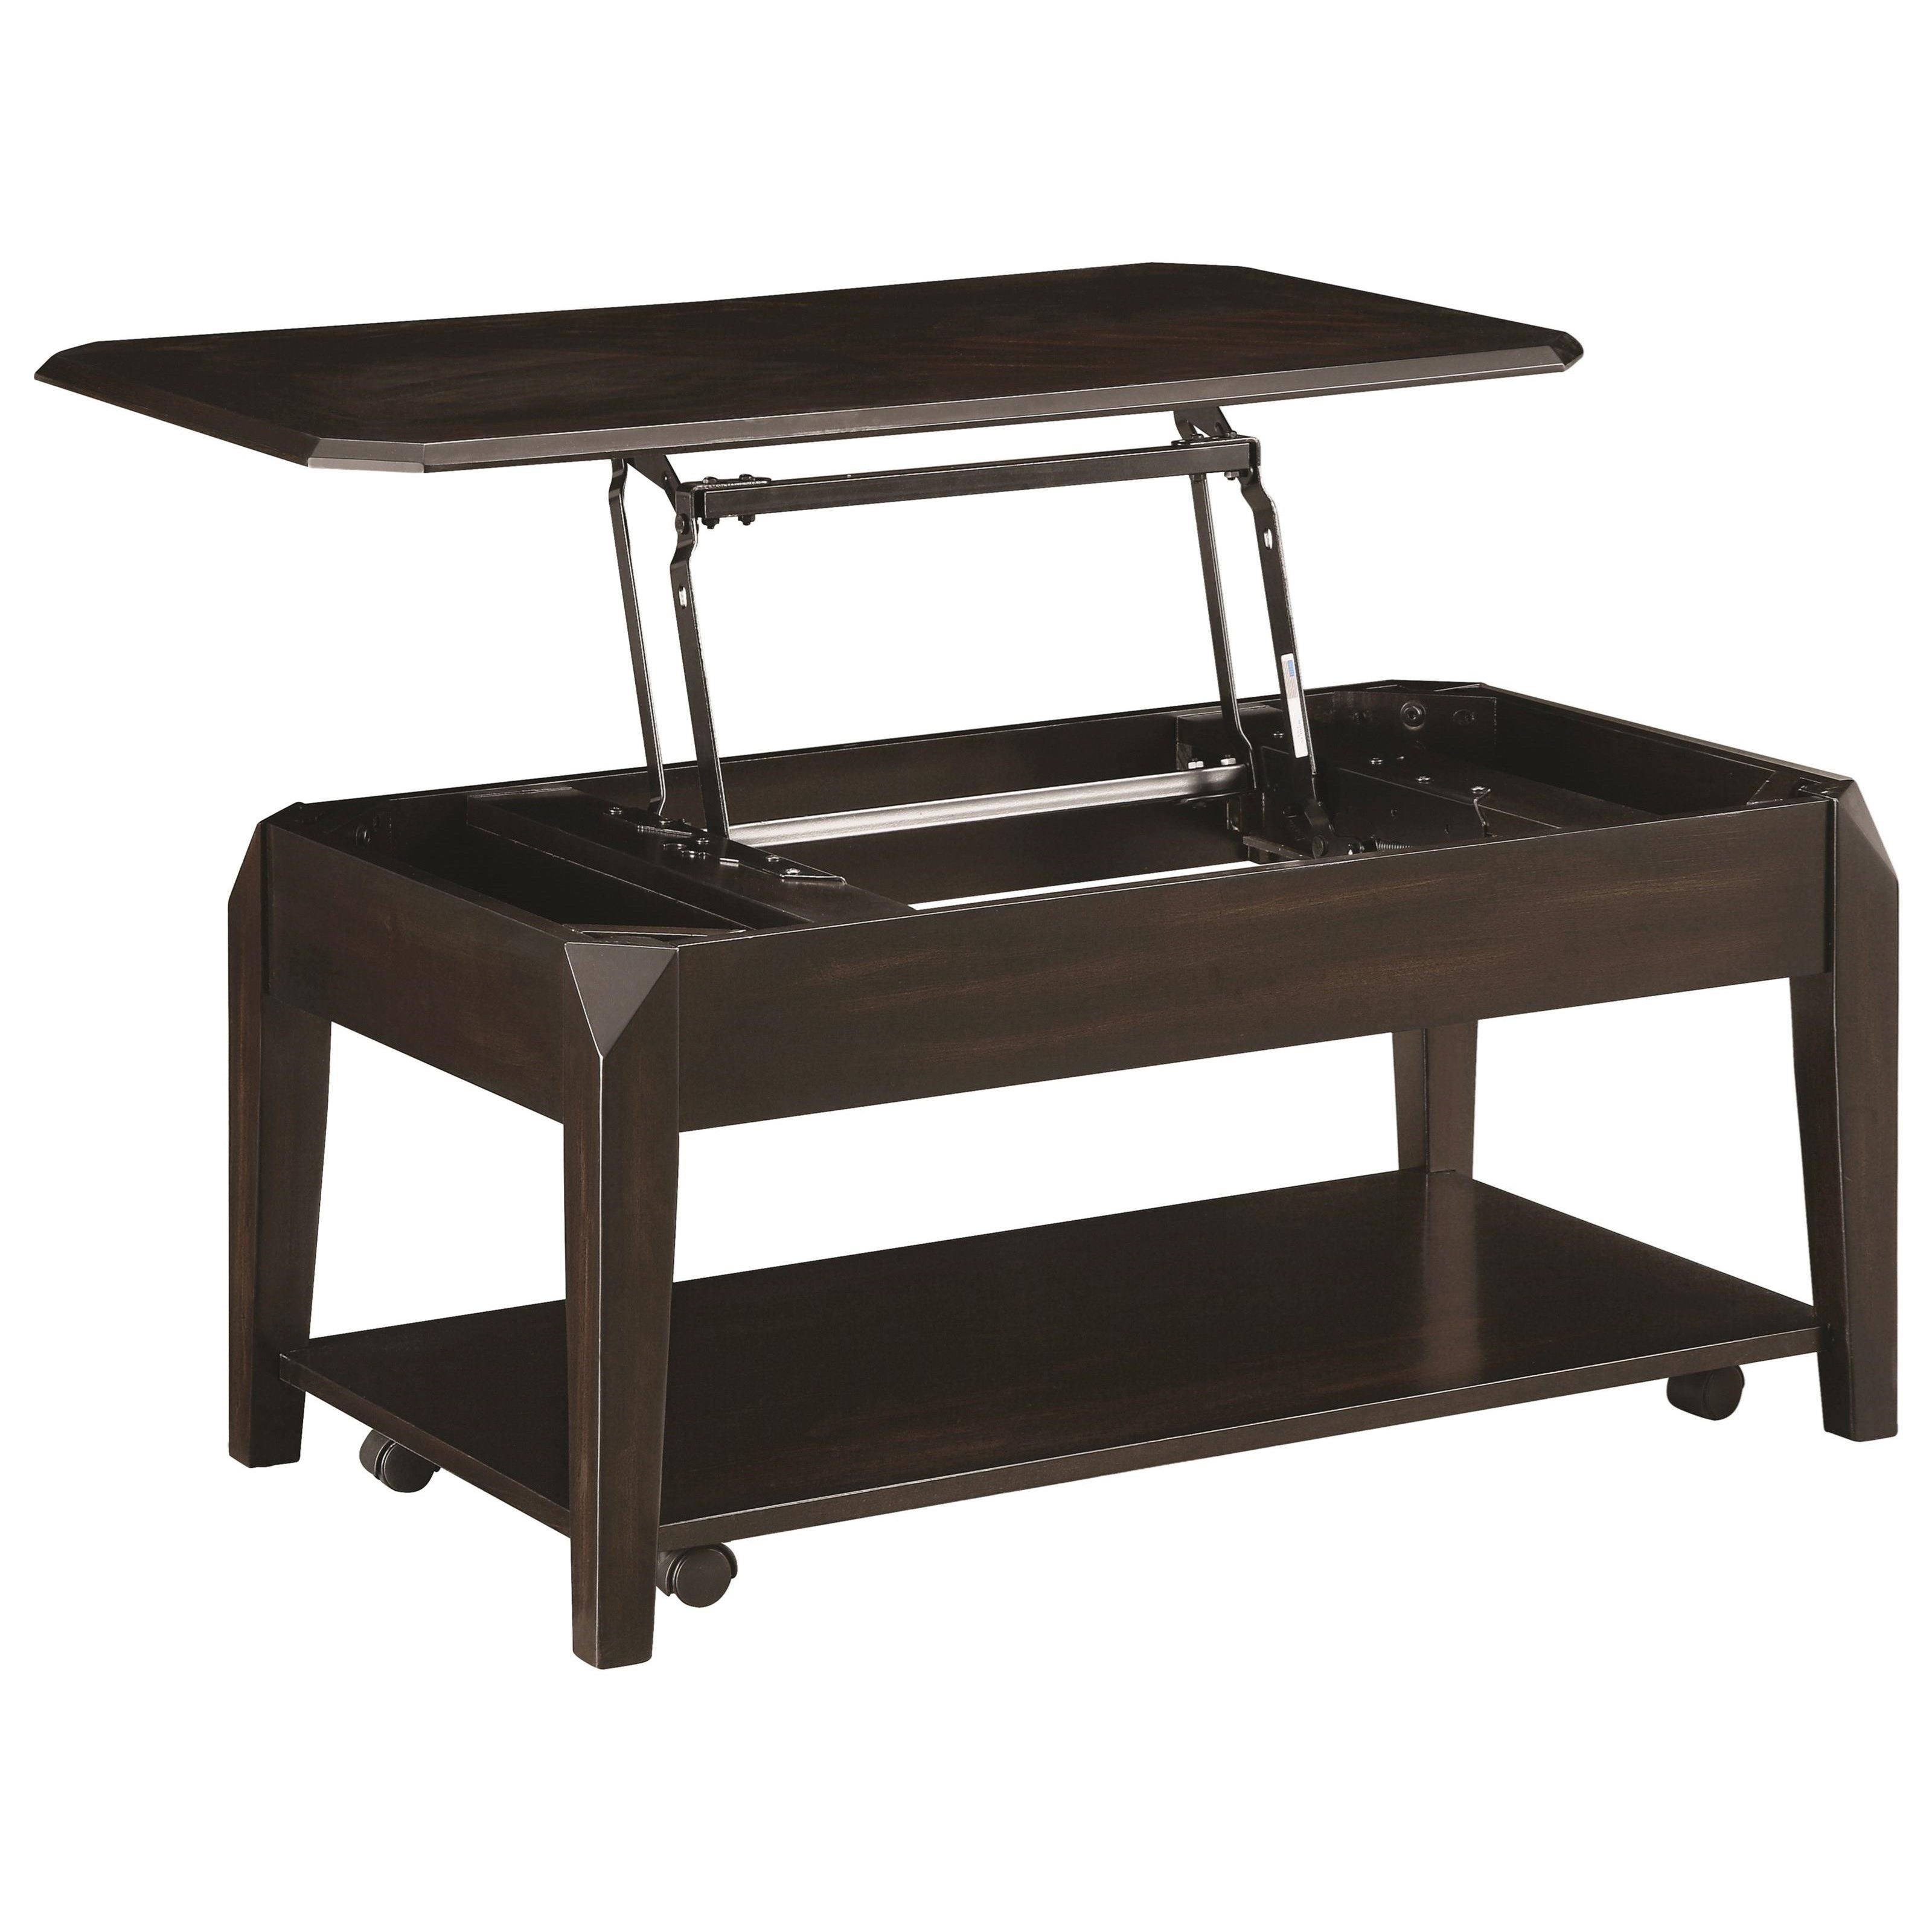 coaster fine furniture cappuccino rectangular console and sofa table leather with wooden trim 72104 lift top coffee rife 39s